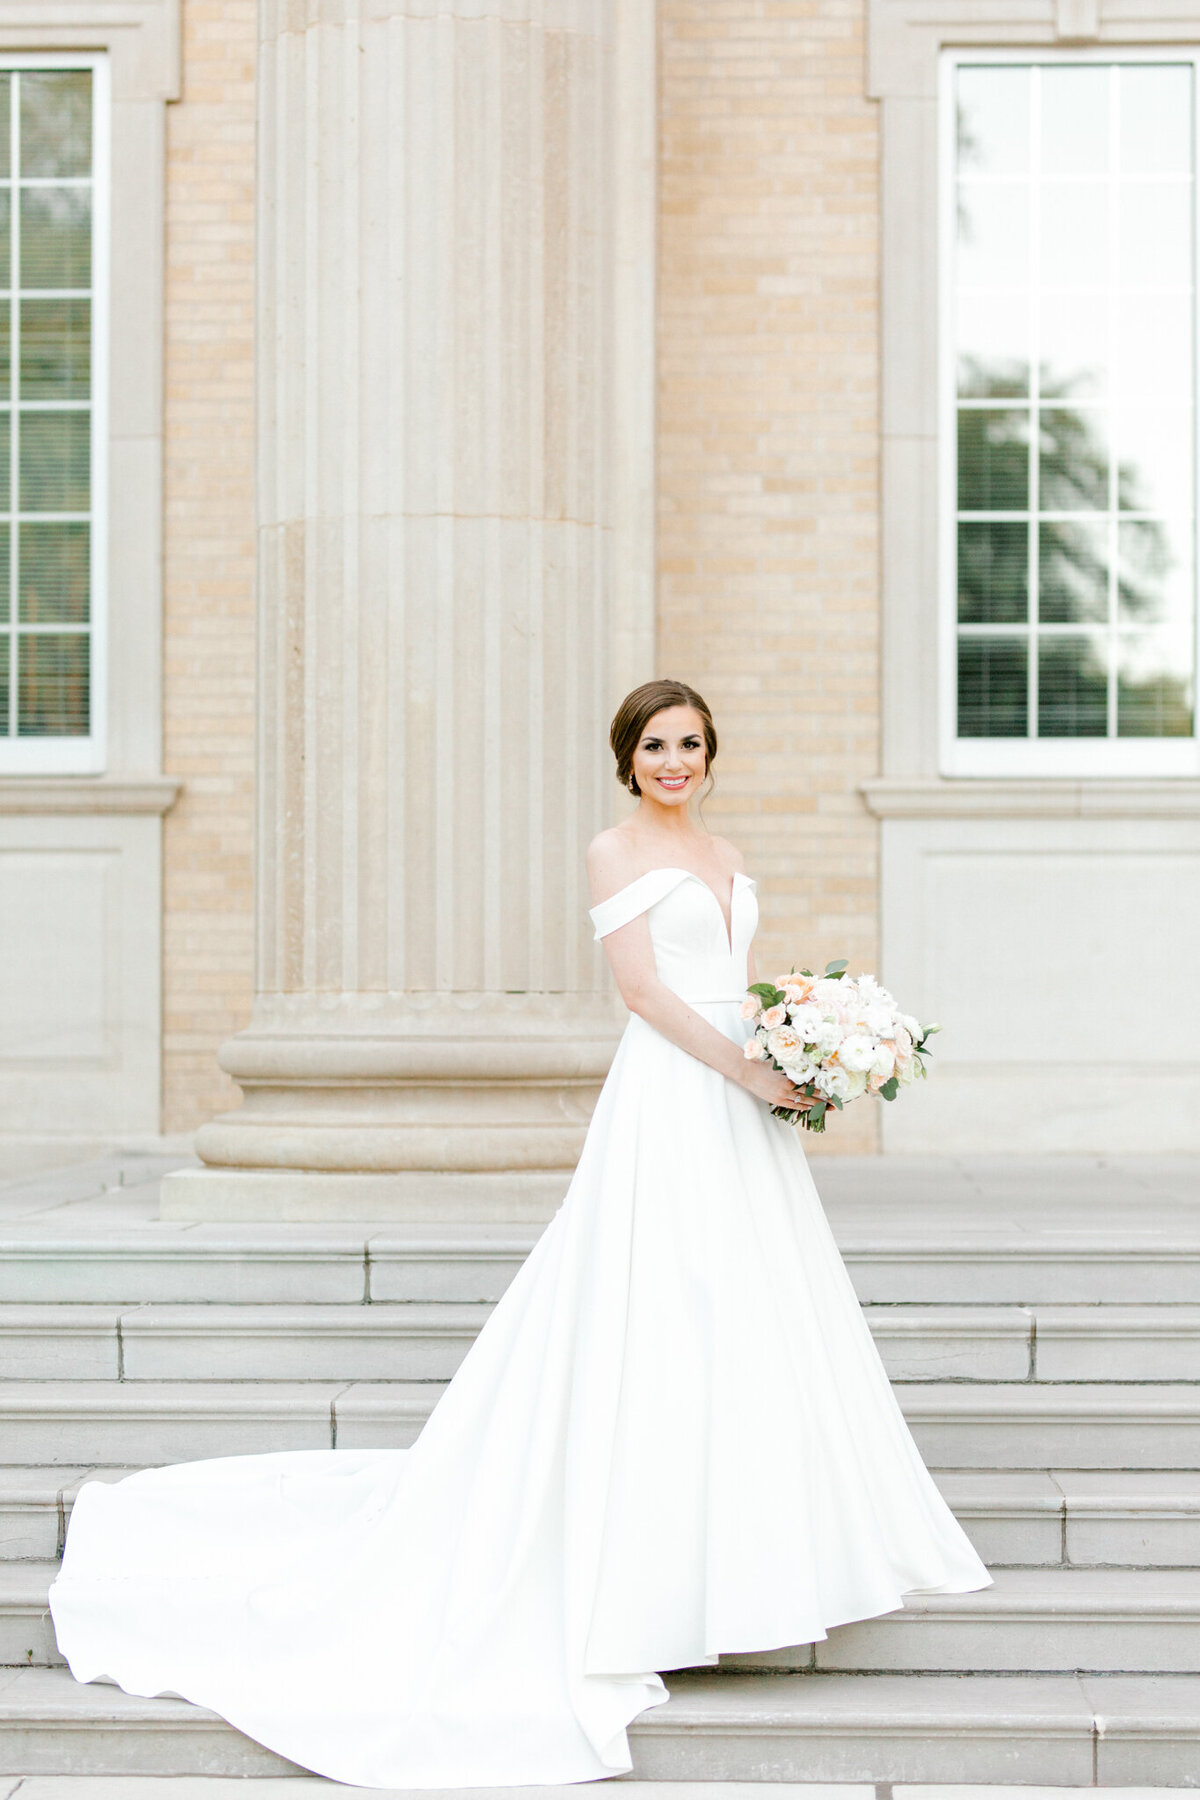 Lexi Broughton Bridal Portraits at TCU Robert Carr Chapel Fort Worth, Texas | Sami Kathryn Photography | Dallas DFW Wedding Photographer | R. Love Floral Blush and Peach Bouquet-26